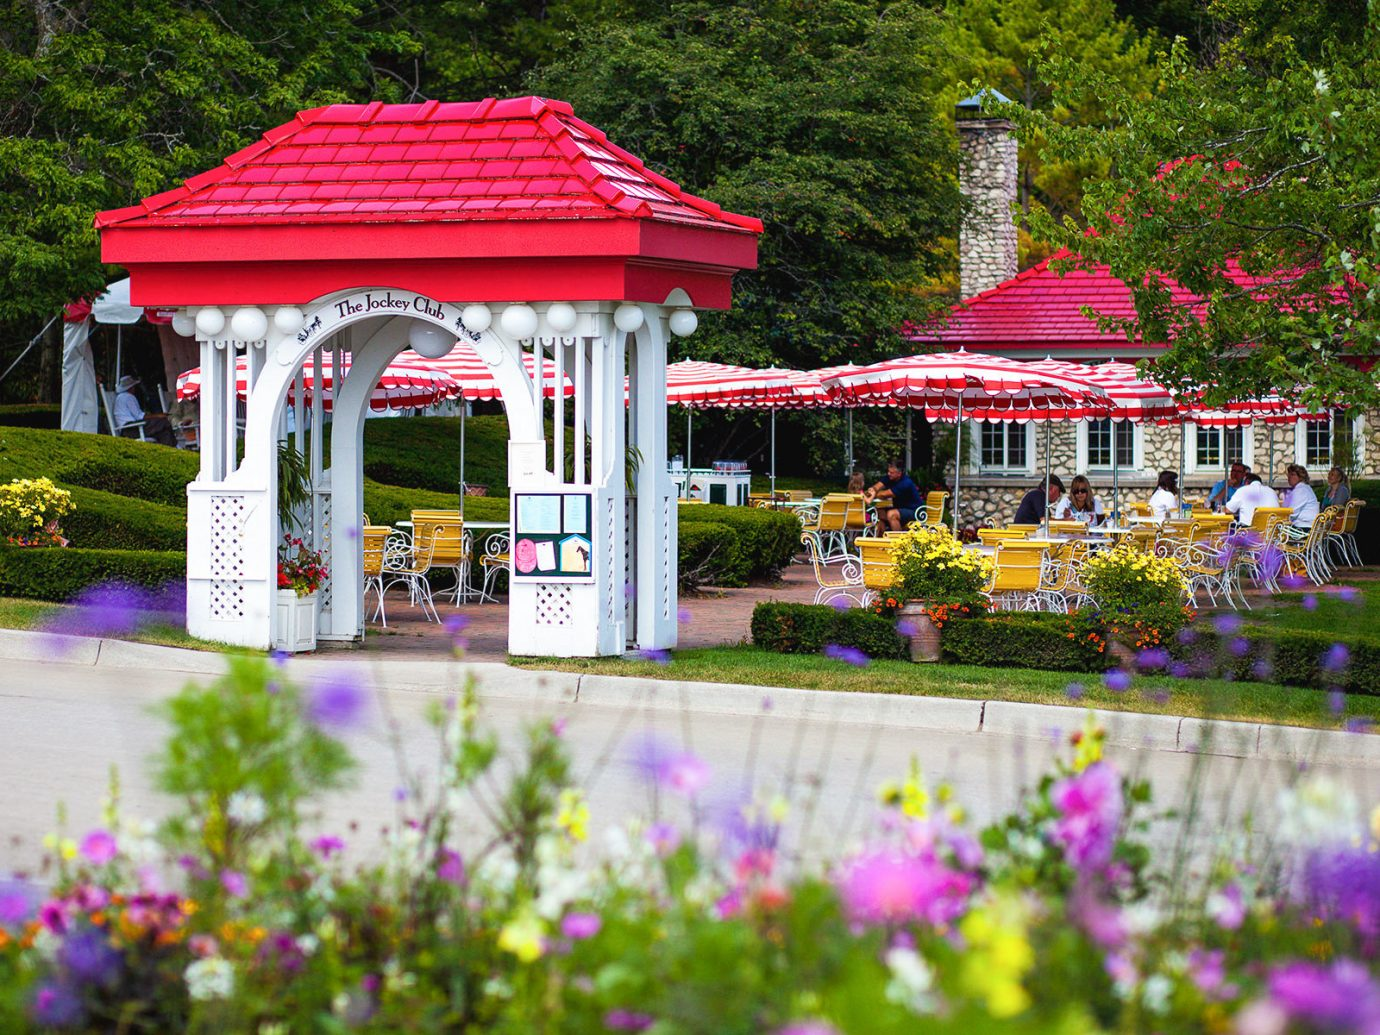 flower tree outdoor plant colorful pink gazebo flora Garden red outdoor structure grass botanical garden house landscaping floristry park pavilion flowering plant decorated colored surrounded